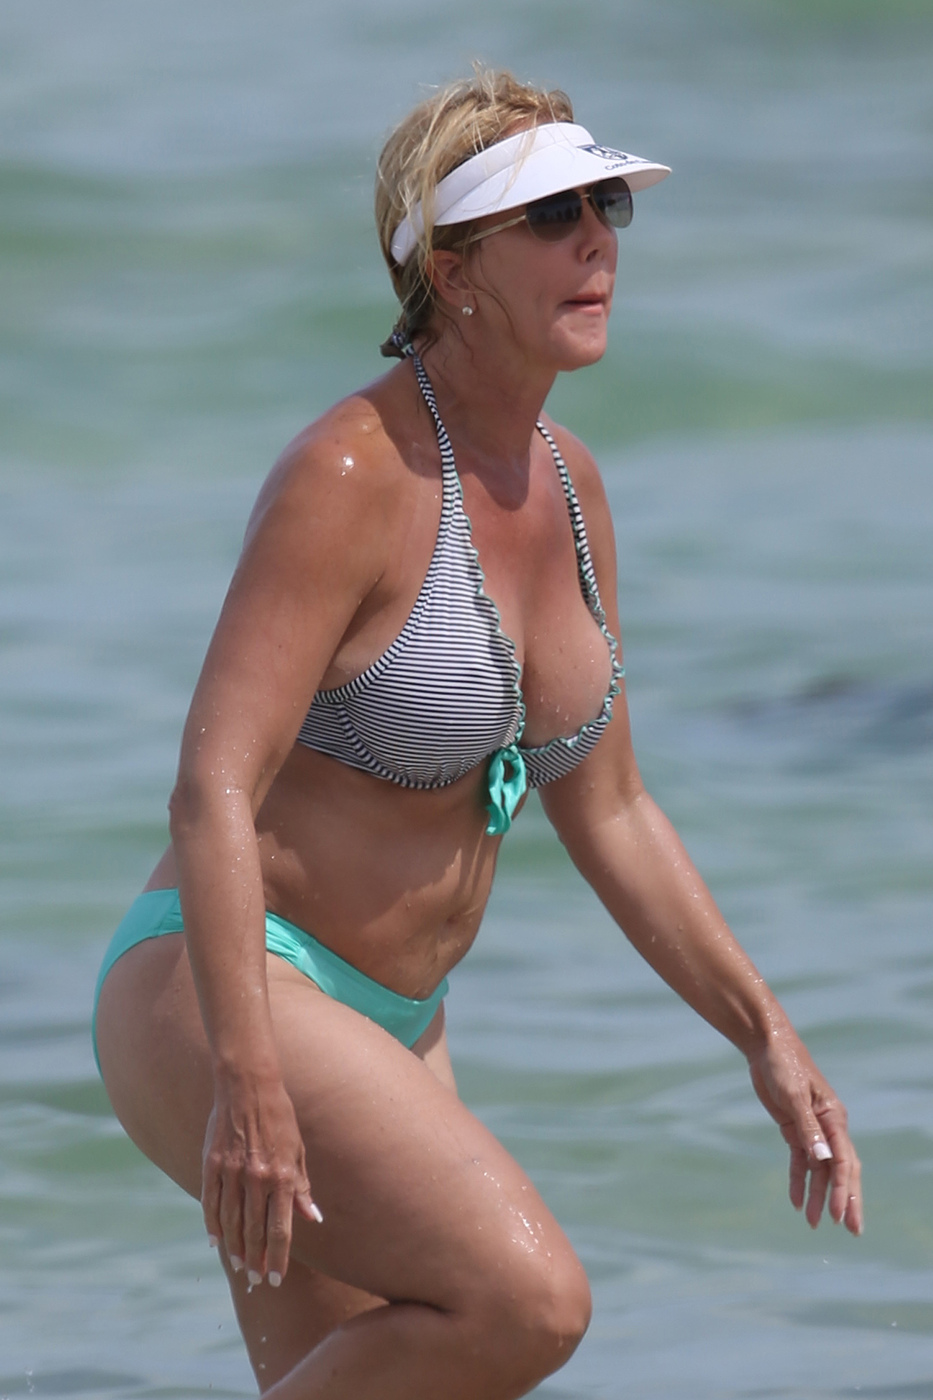 53 Year Old Vicki Gunvalson Flaunts Amazing Bikini Body